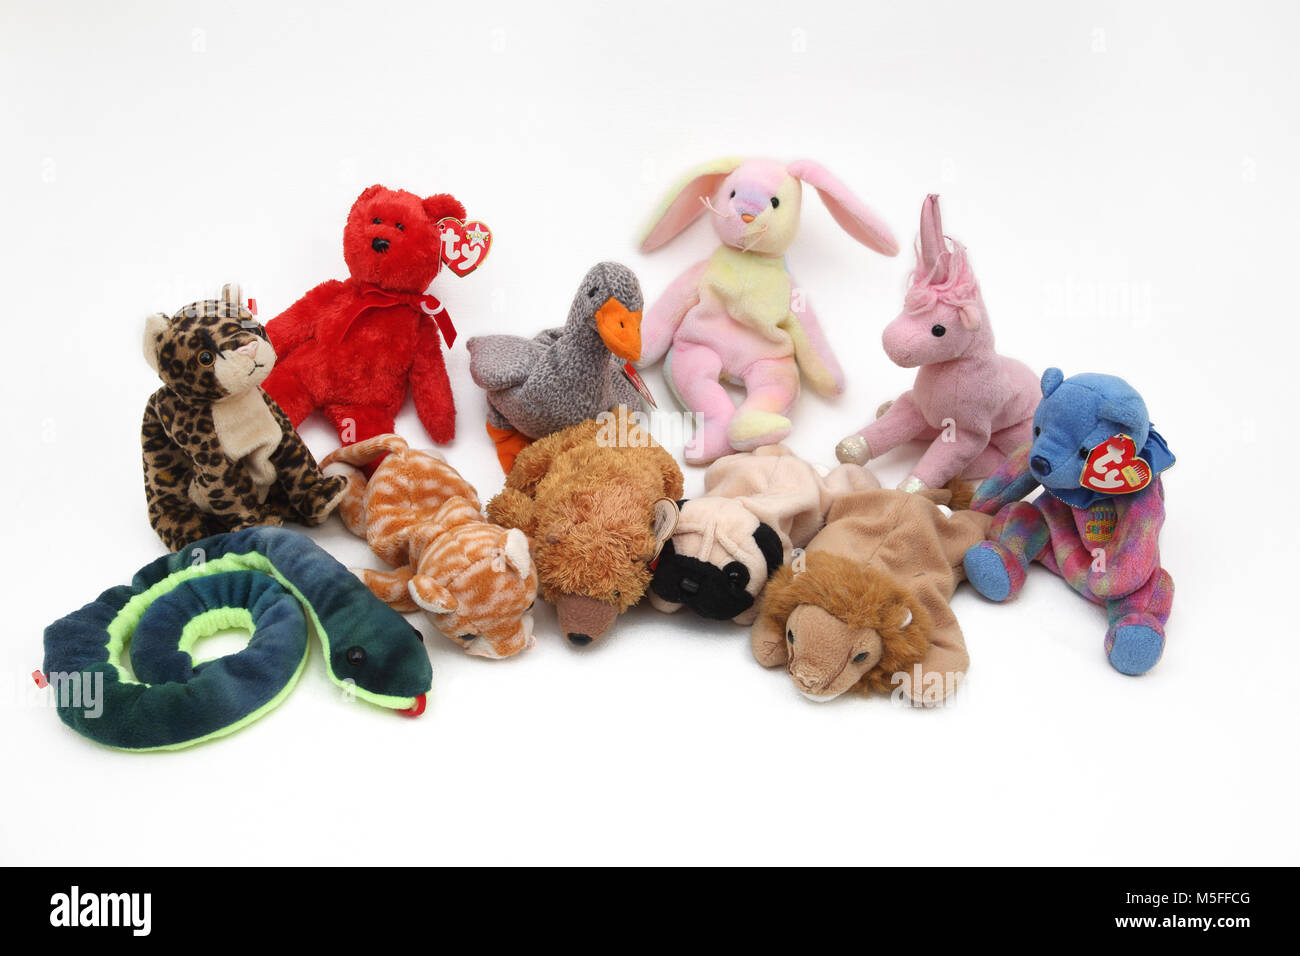 Collection of TY Beanie Babies - Stock Image